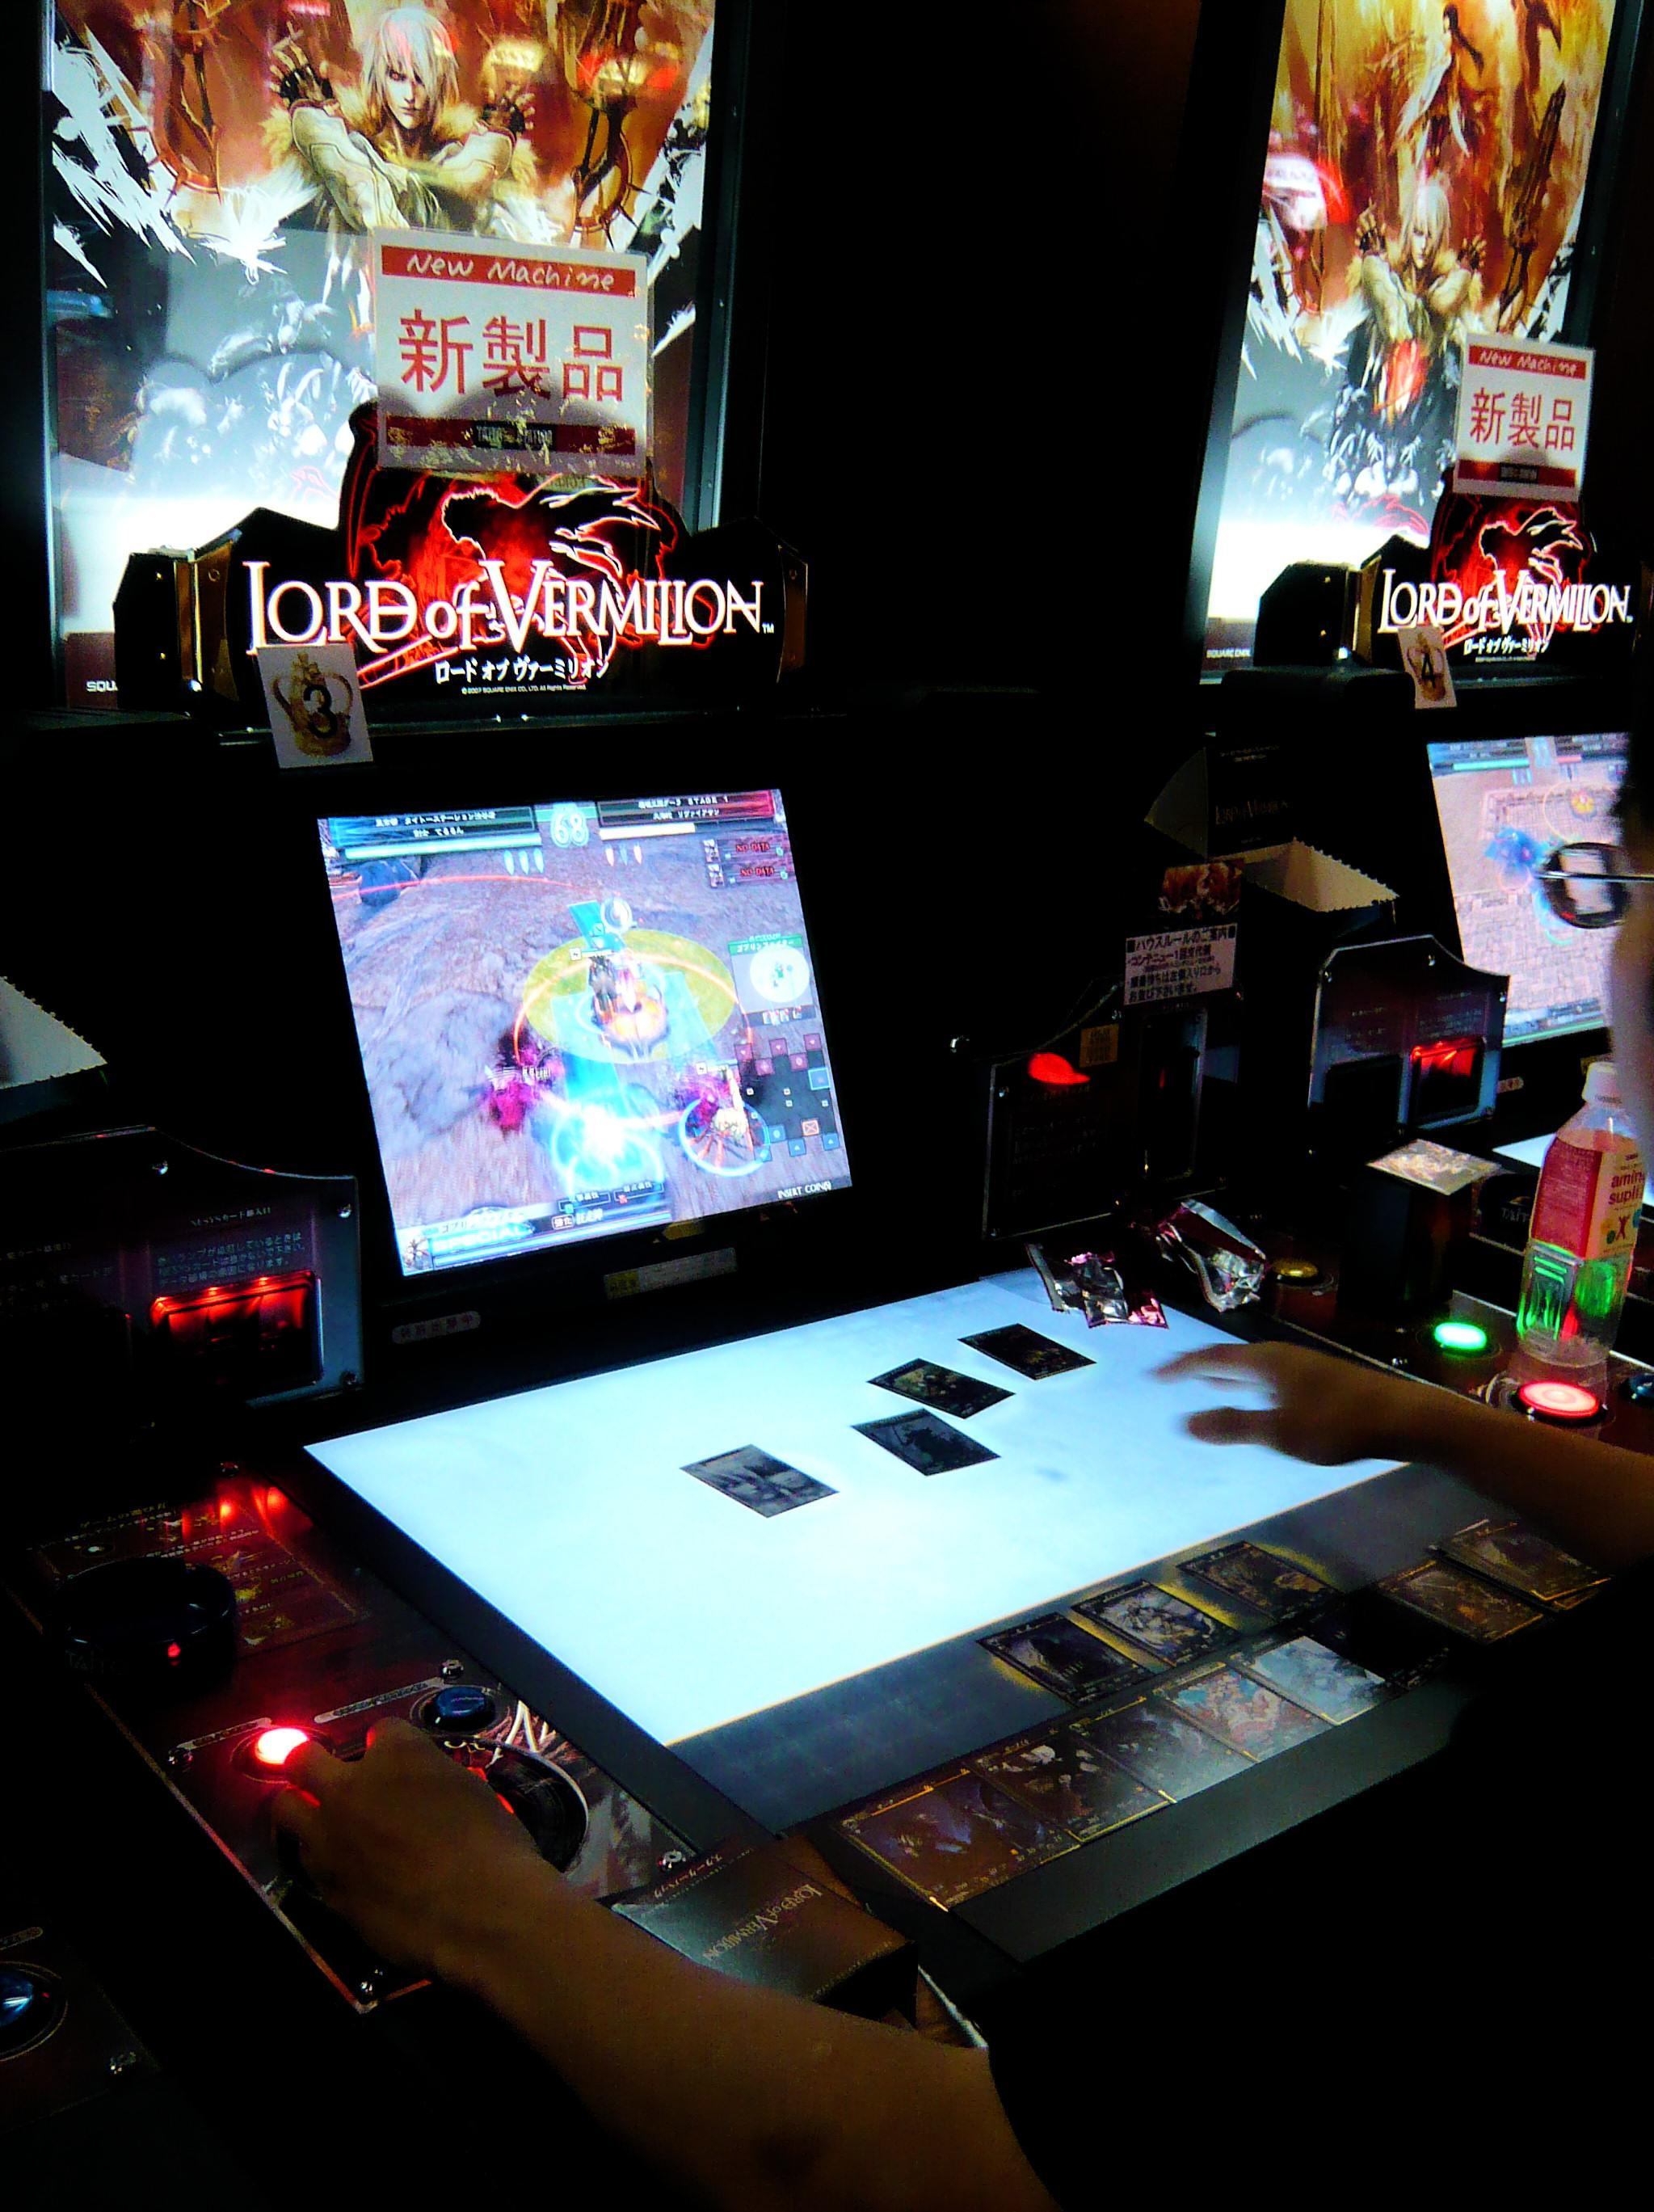 File:Lord of Vermilion videogame - Taito Station.jpg